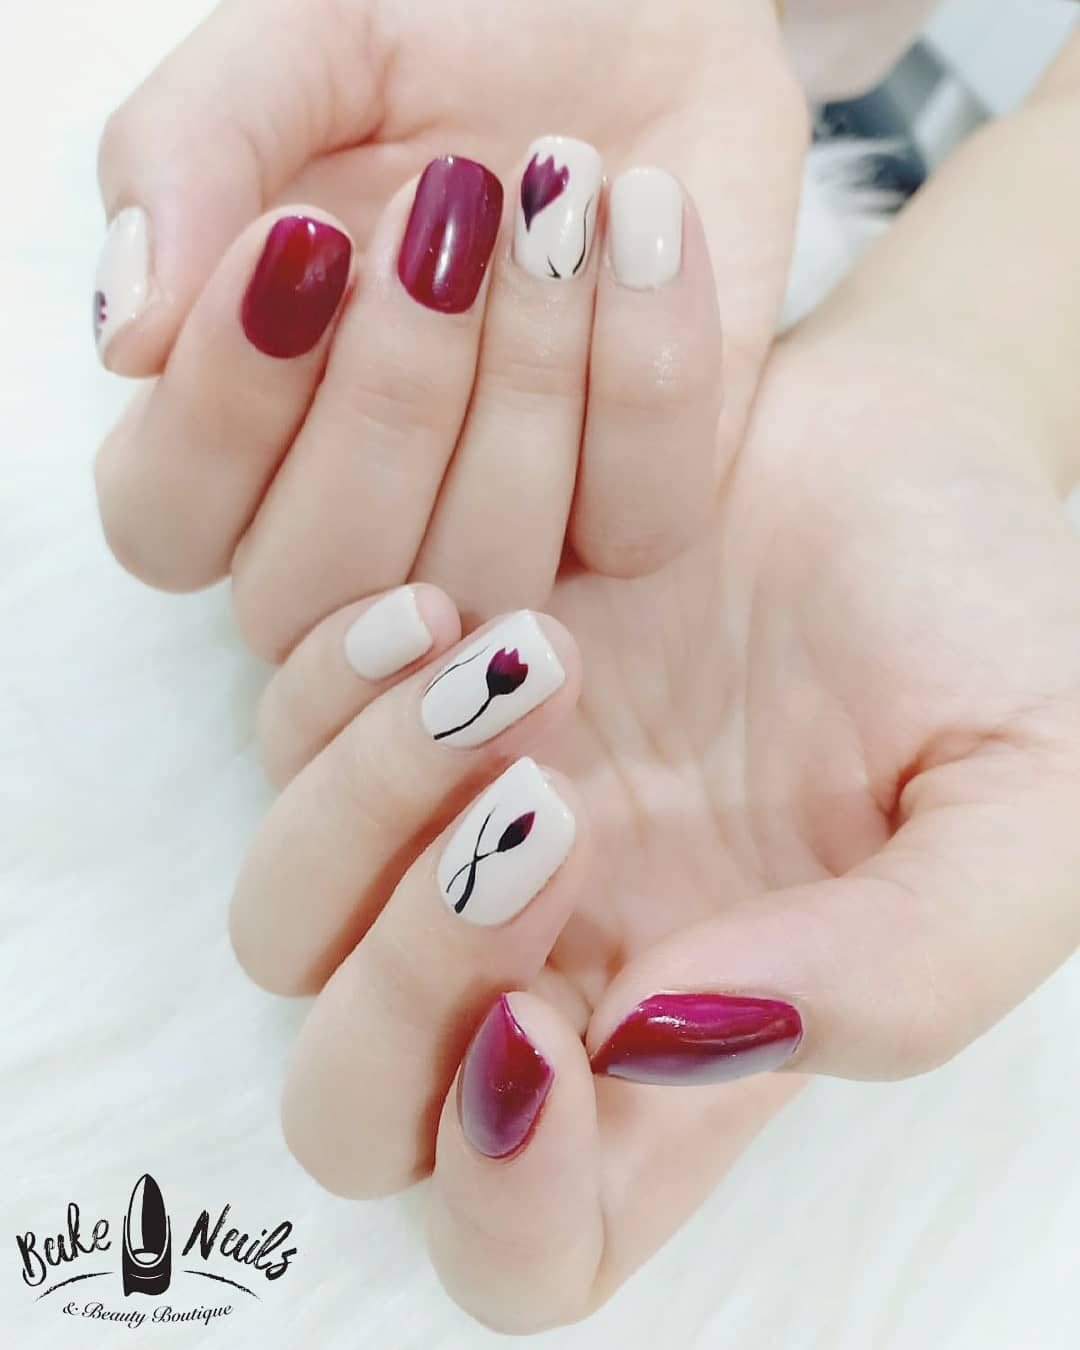 Cute Pink and White Nails with Flower Nail Art